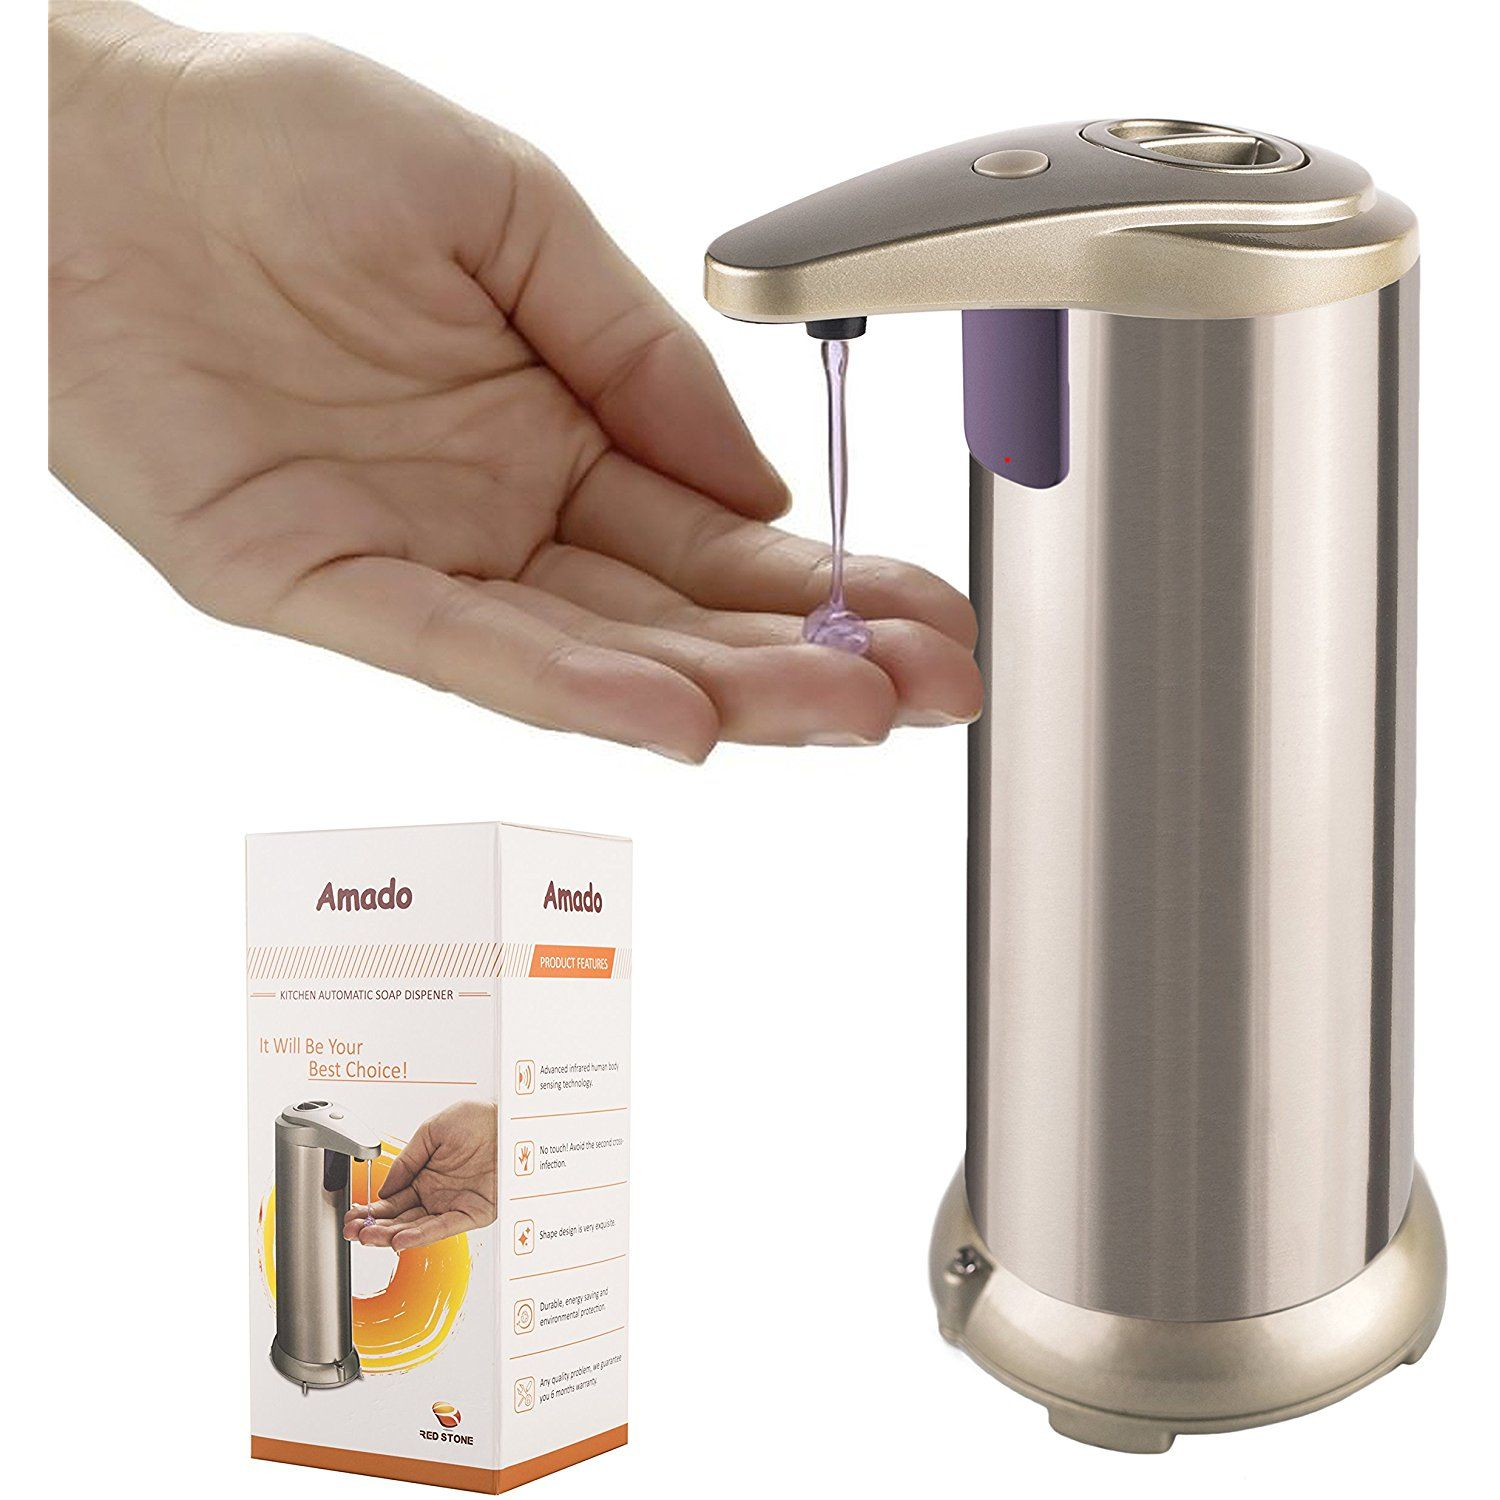 Kitchen Automatic Soap Dispenser Amado Made Of Brushed Stainless